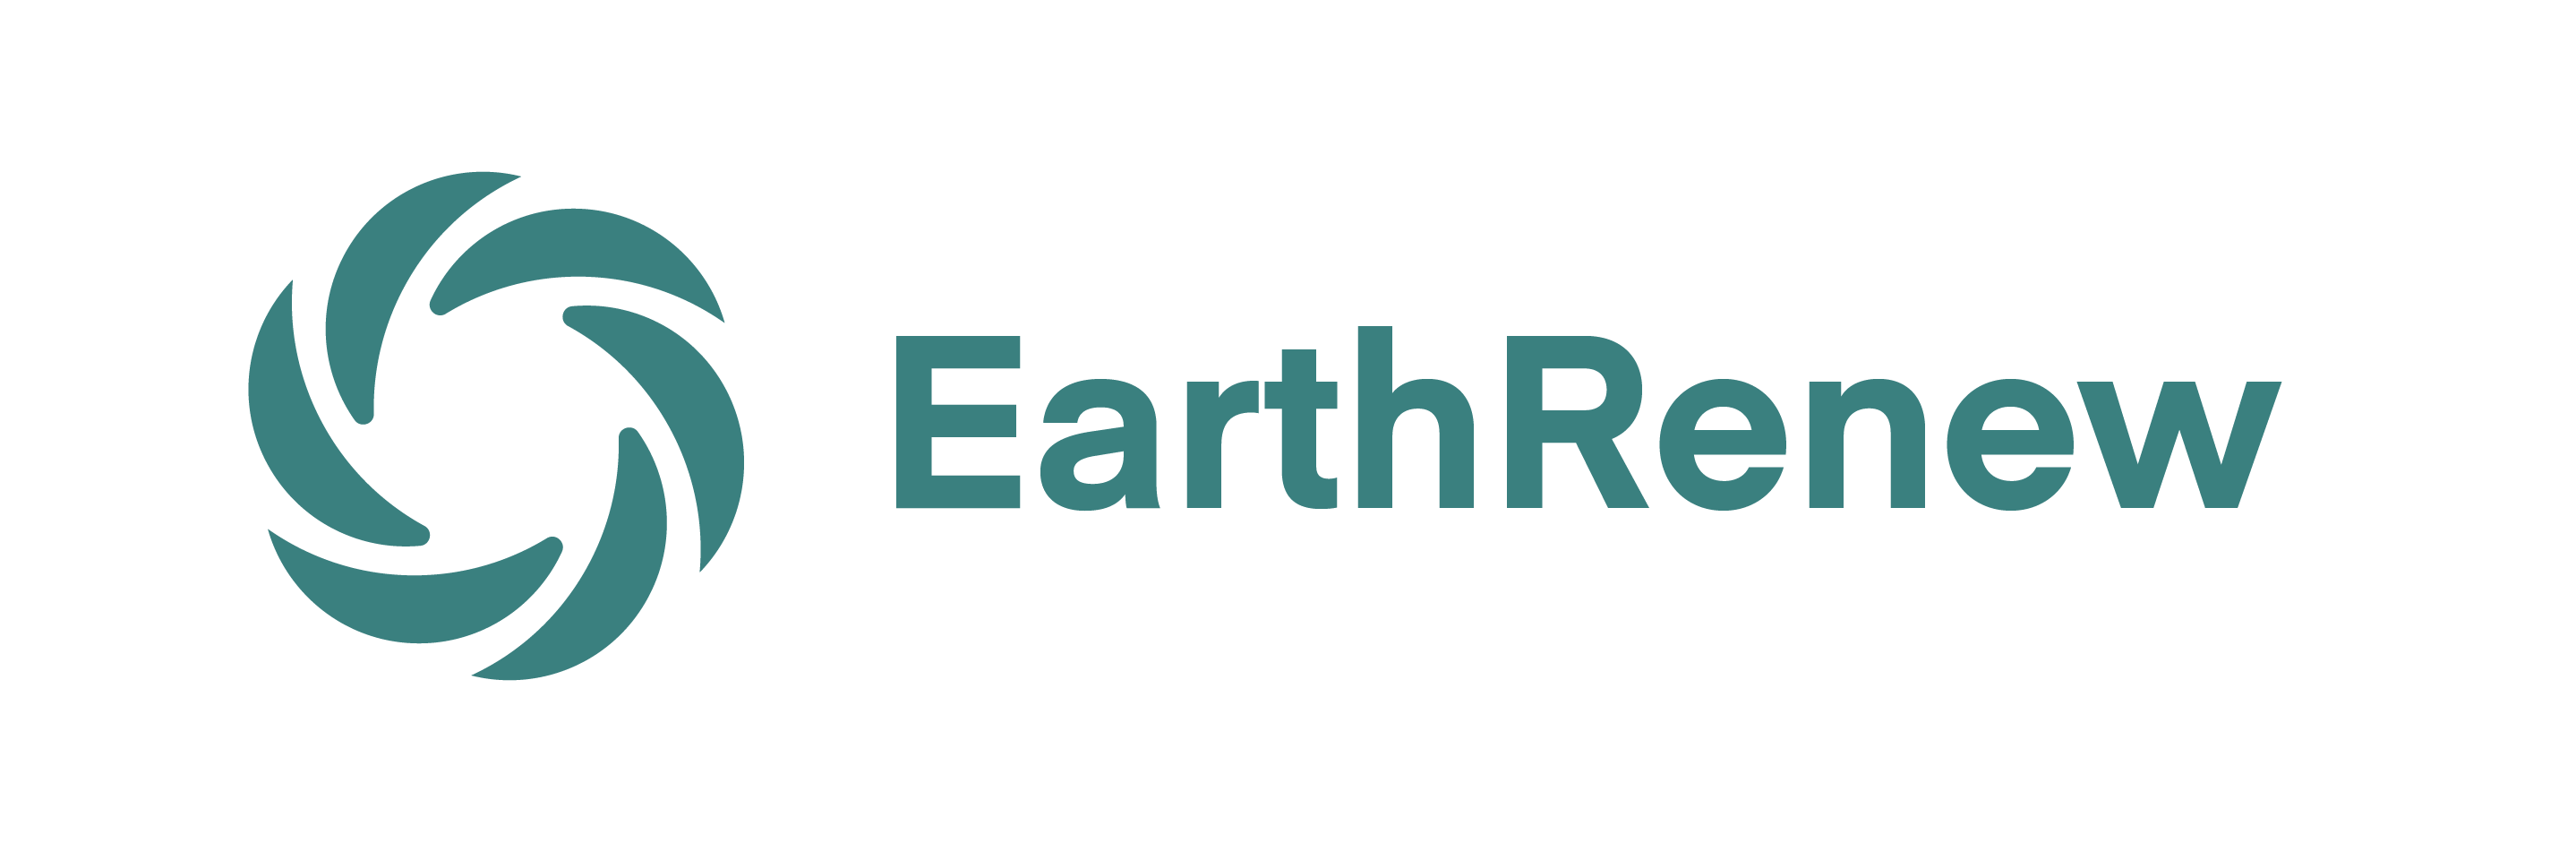 REPEAT -- EarthRenew Announces Up to C$10m Equity Facility With Alumina